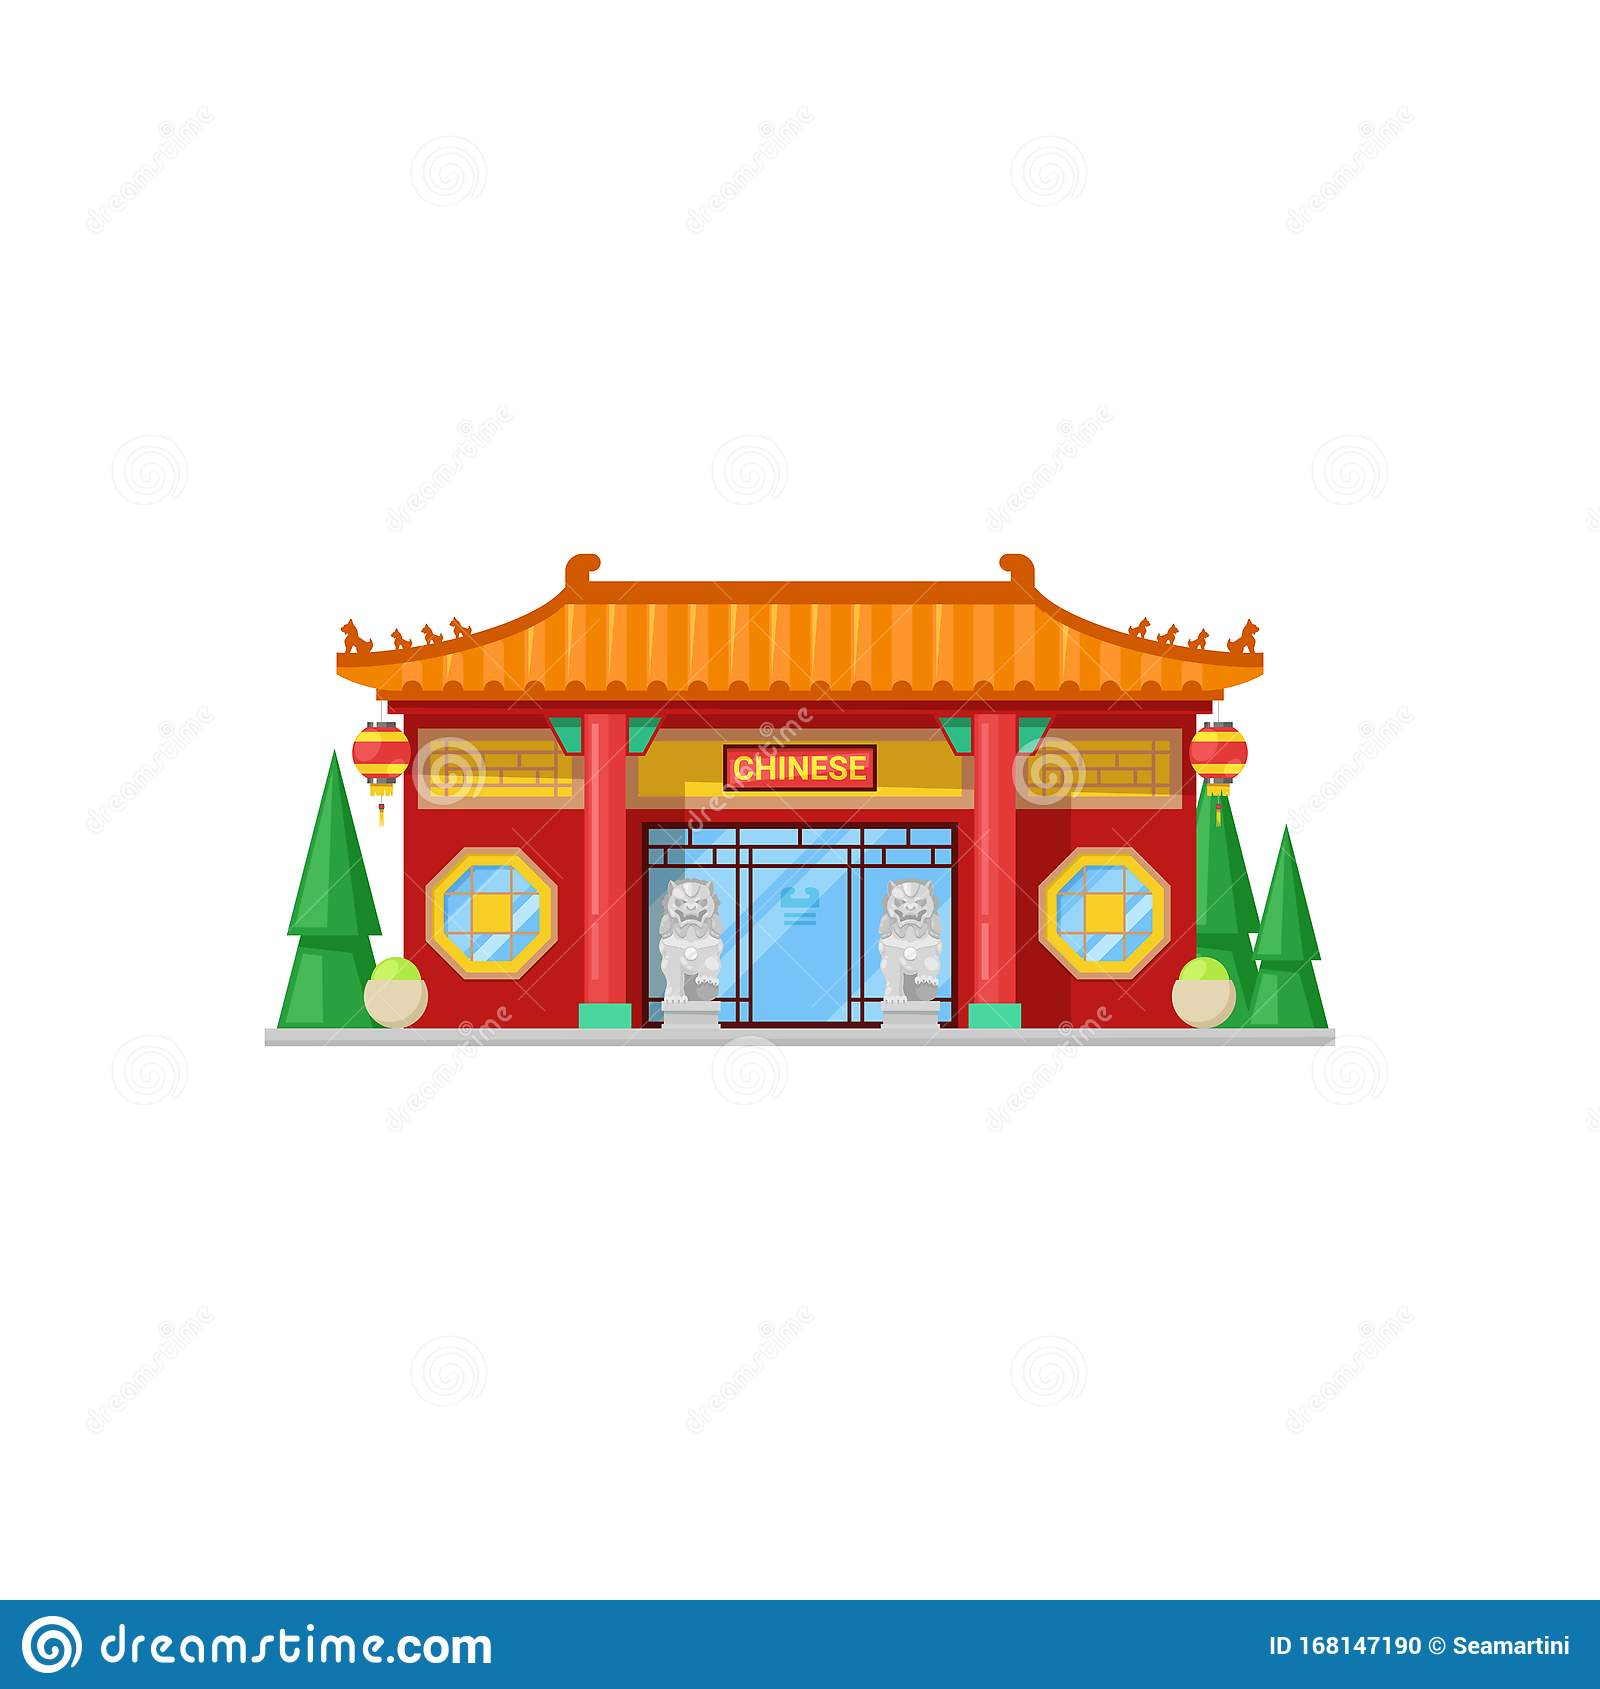 Chinese Exterior Restaurant Stock Illustrations 73 Chinese Exterior Restaurant Stock Illustrations Vectors Clipart Dreamstime